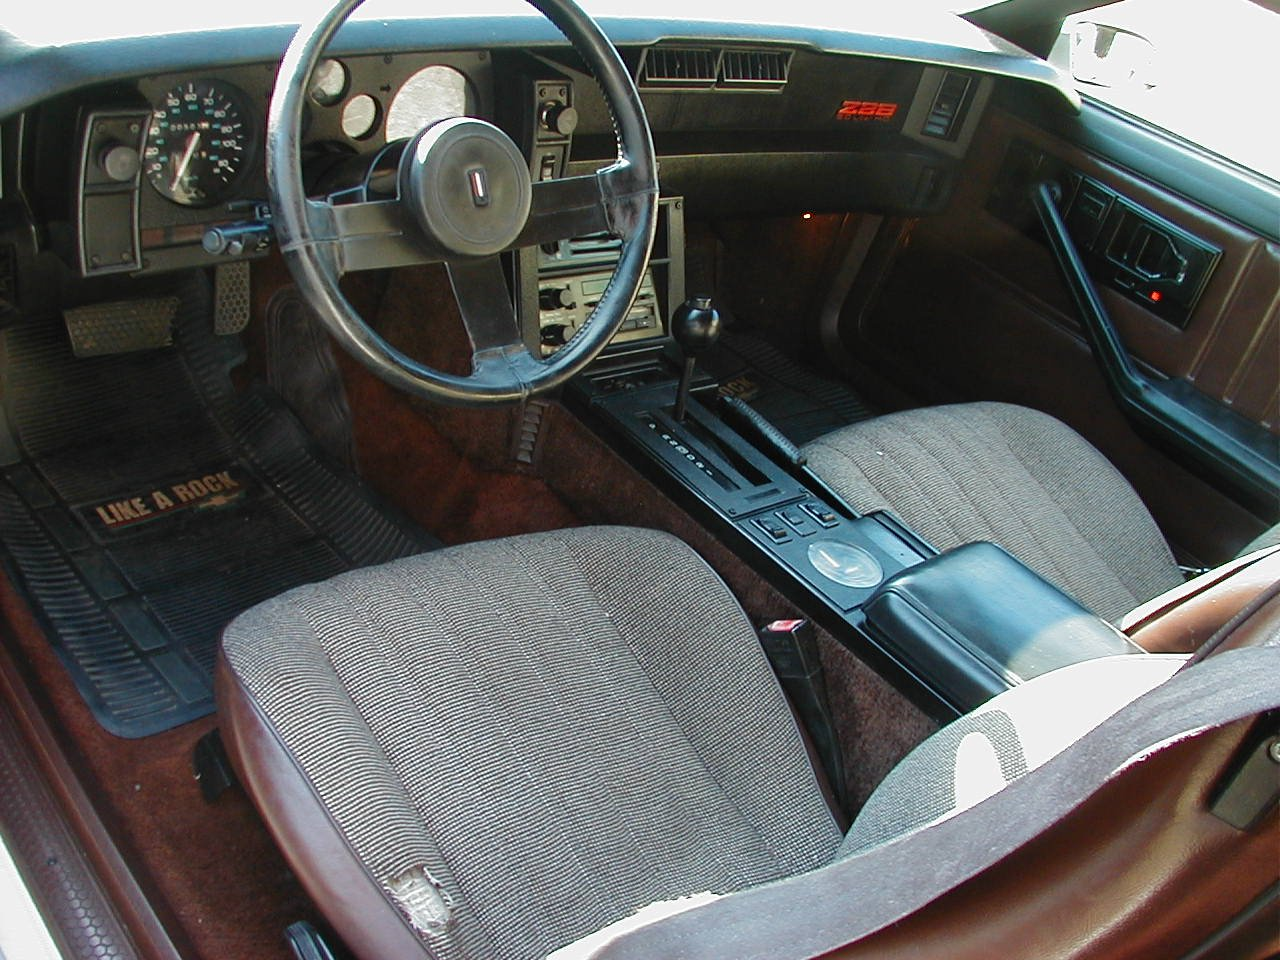 1982 1984 Z28 S Pic Thread Page 3 Third